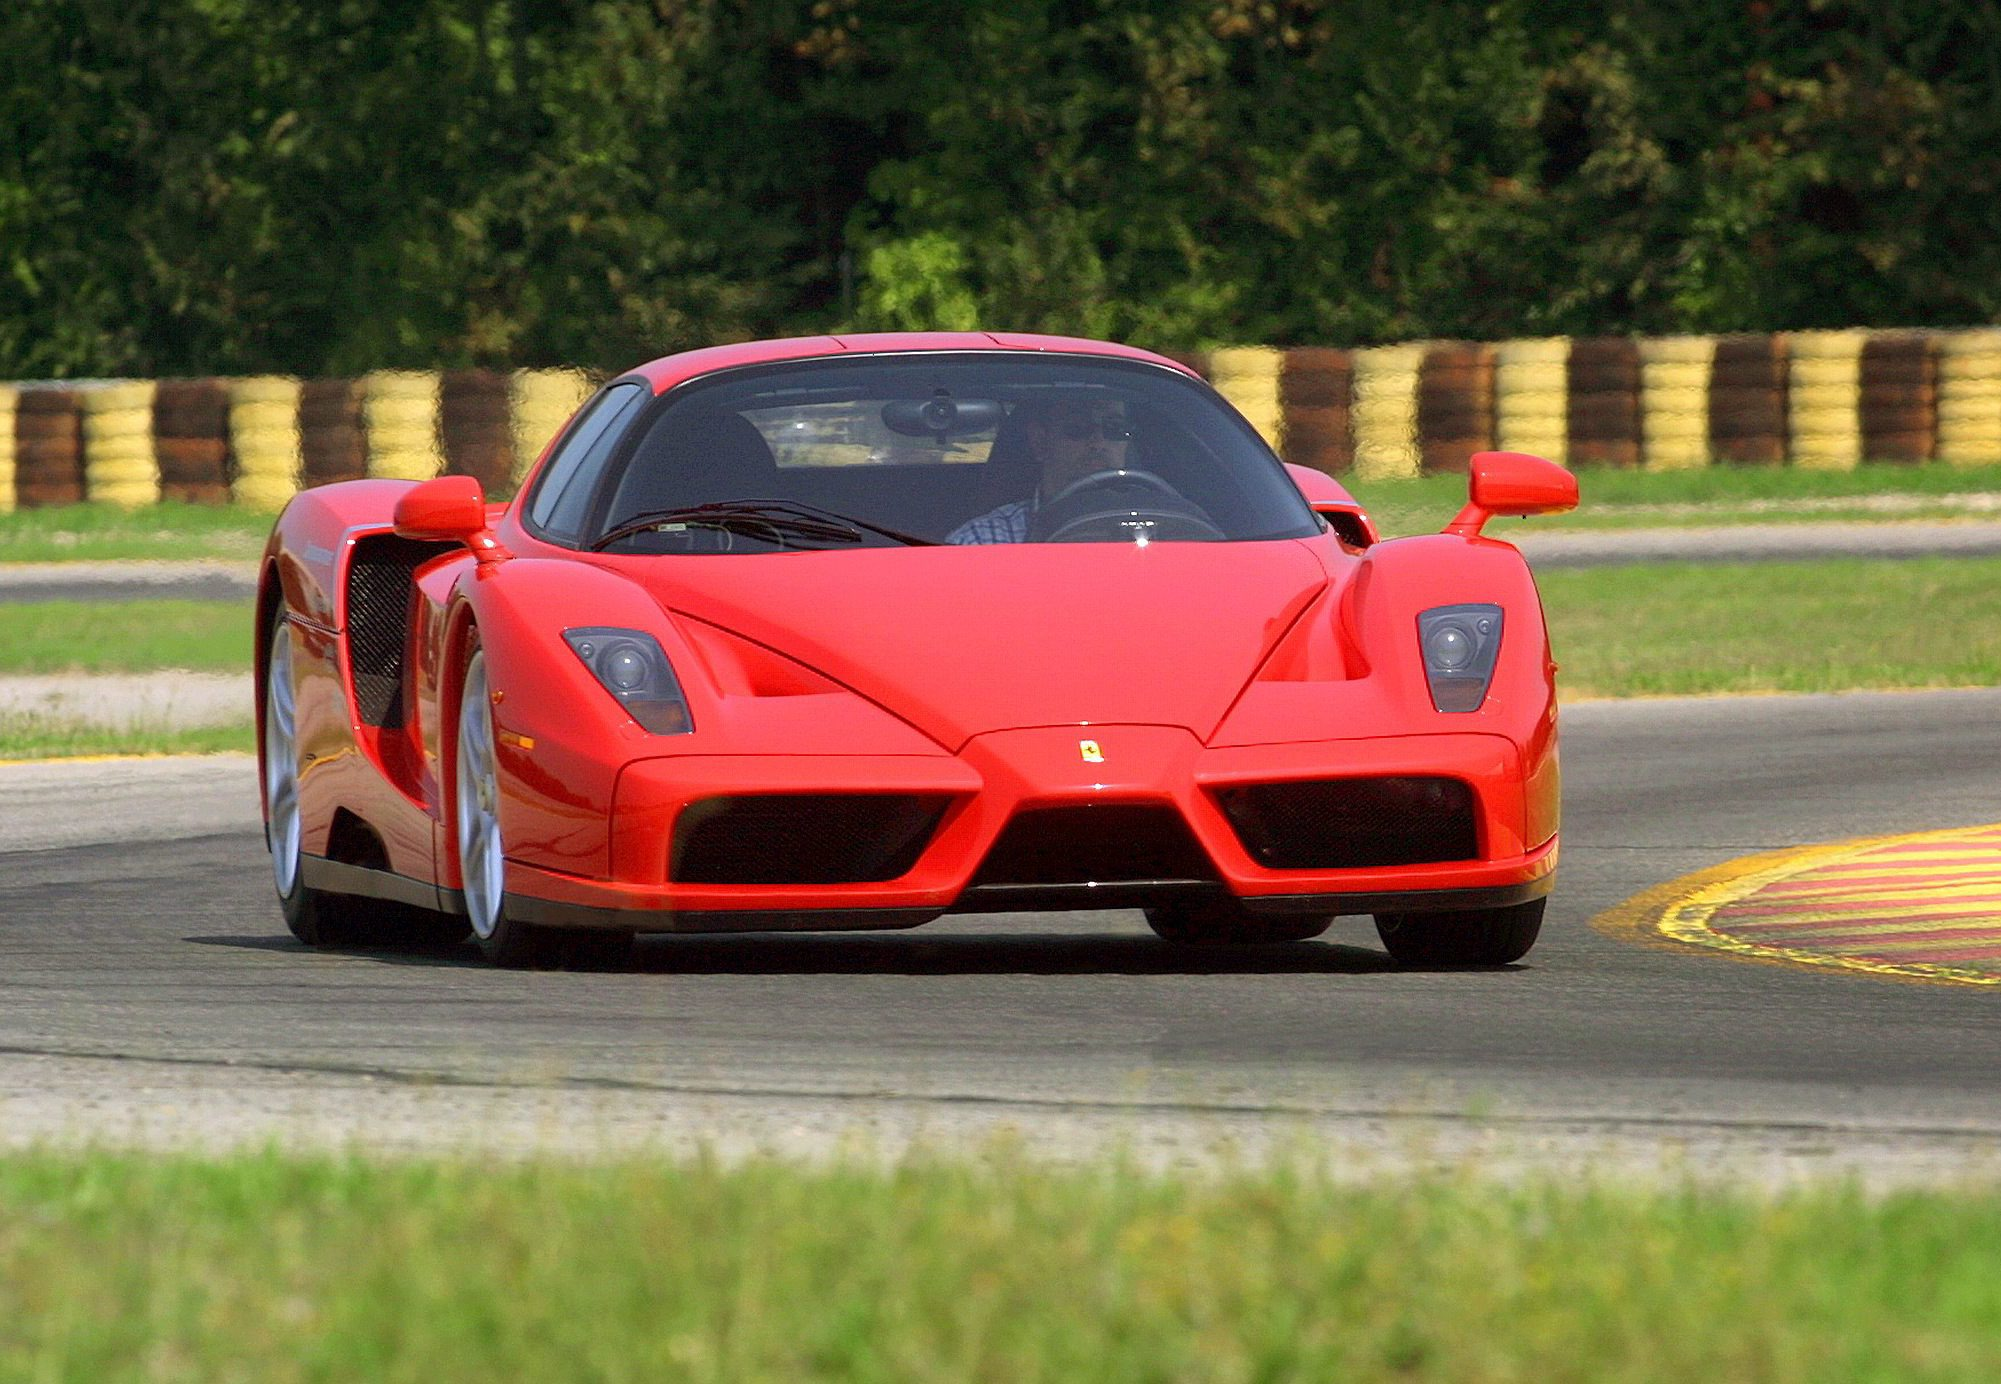 A Ferrari Enzo similar to the one owned by Jenson Button which is expected to sell for £1m